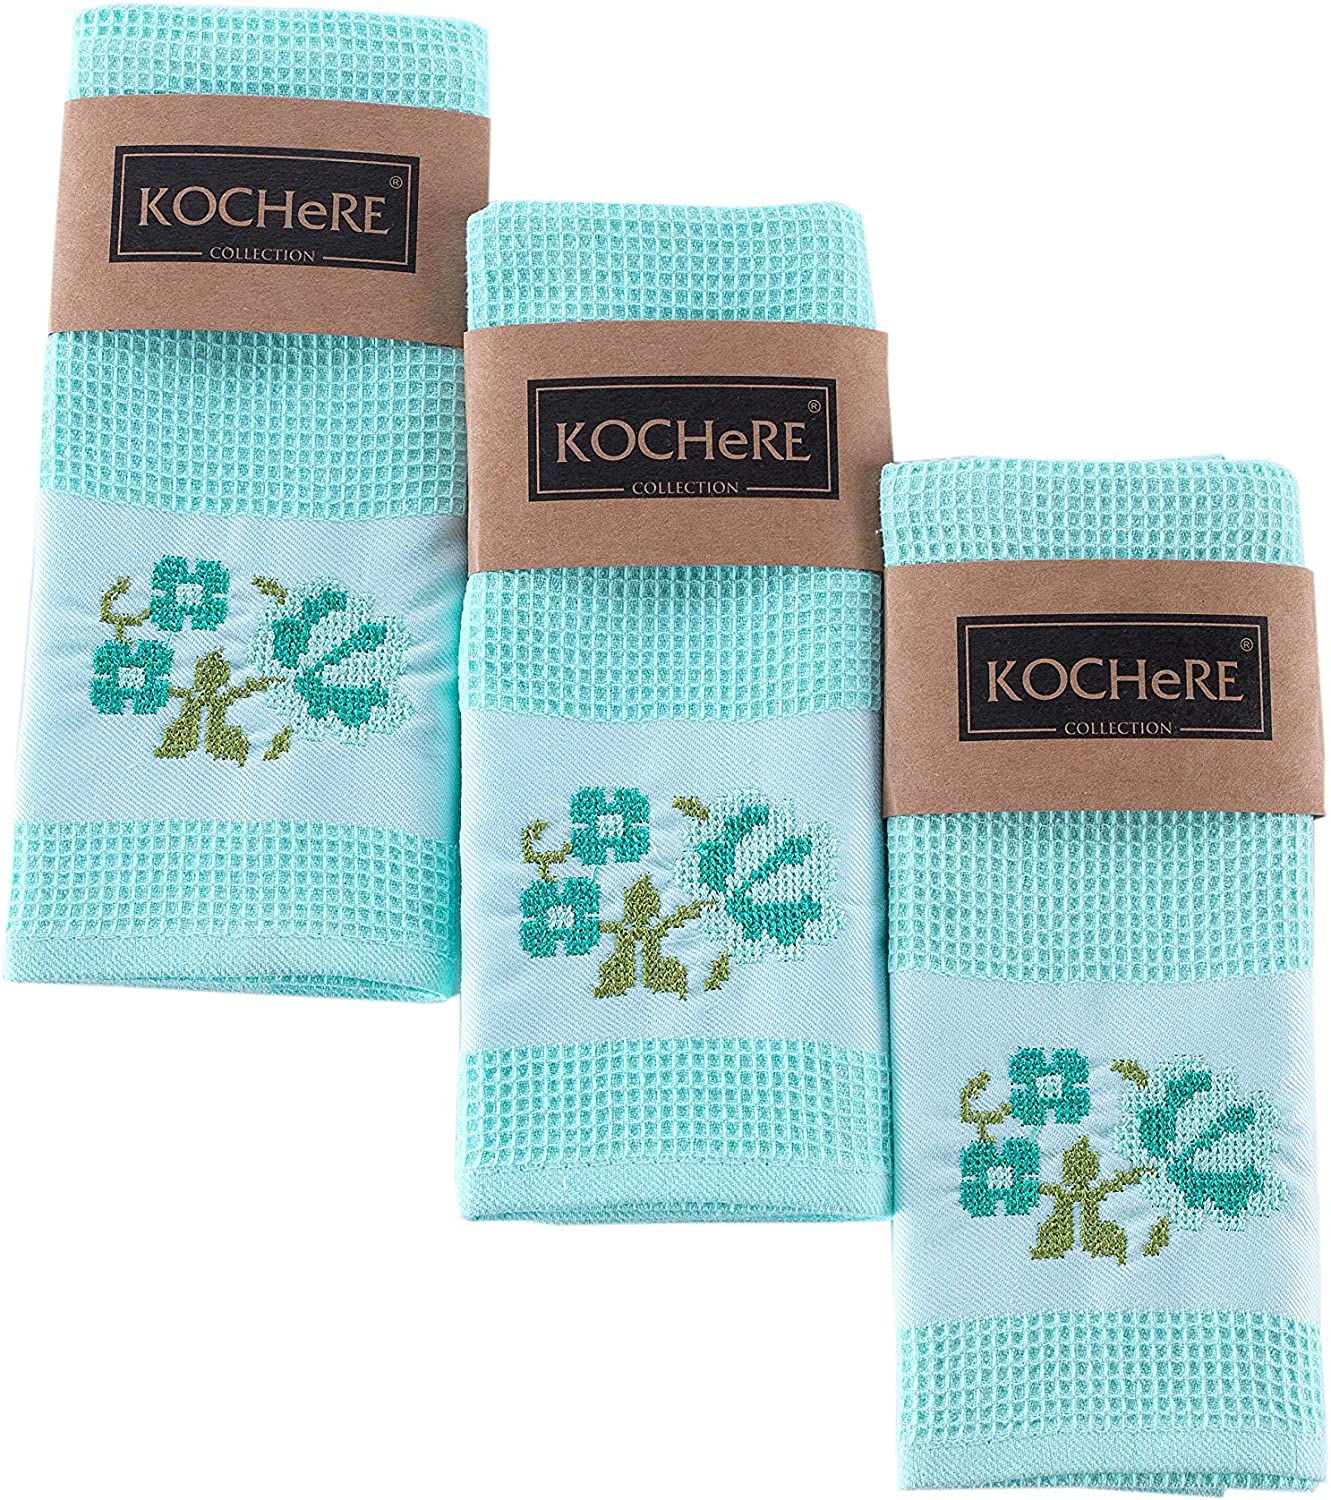 "Pasam Home Turkish Kitchen Towels and Hand Towel Superior Absorbency and Quick Drying 18"" x 27"" 3 Piece Set 100% Densely Woven Cotton Yarn Pool Pique Embroidered Tea Towels (Turquoise)"